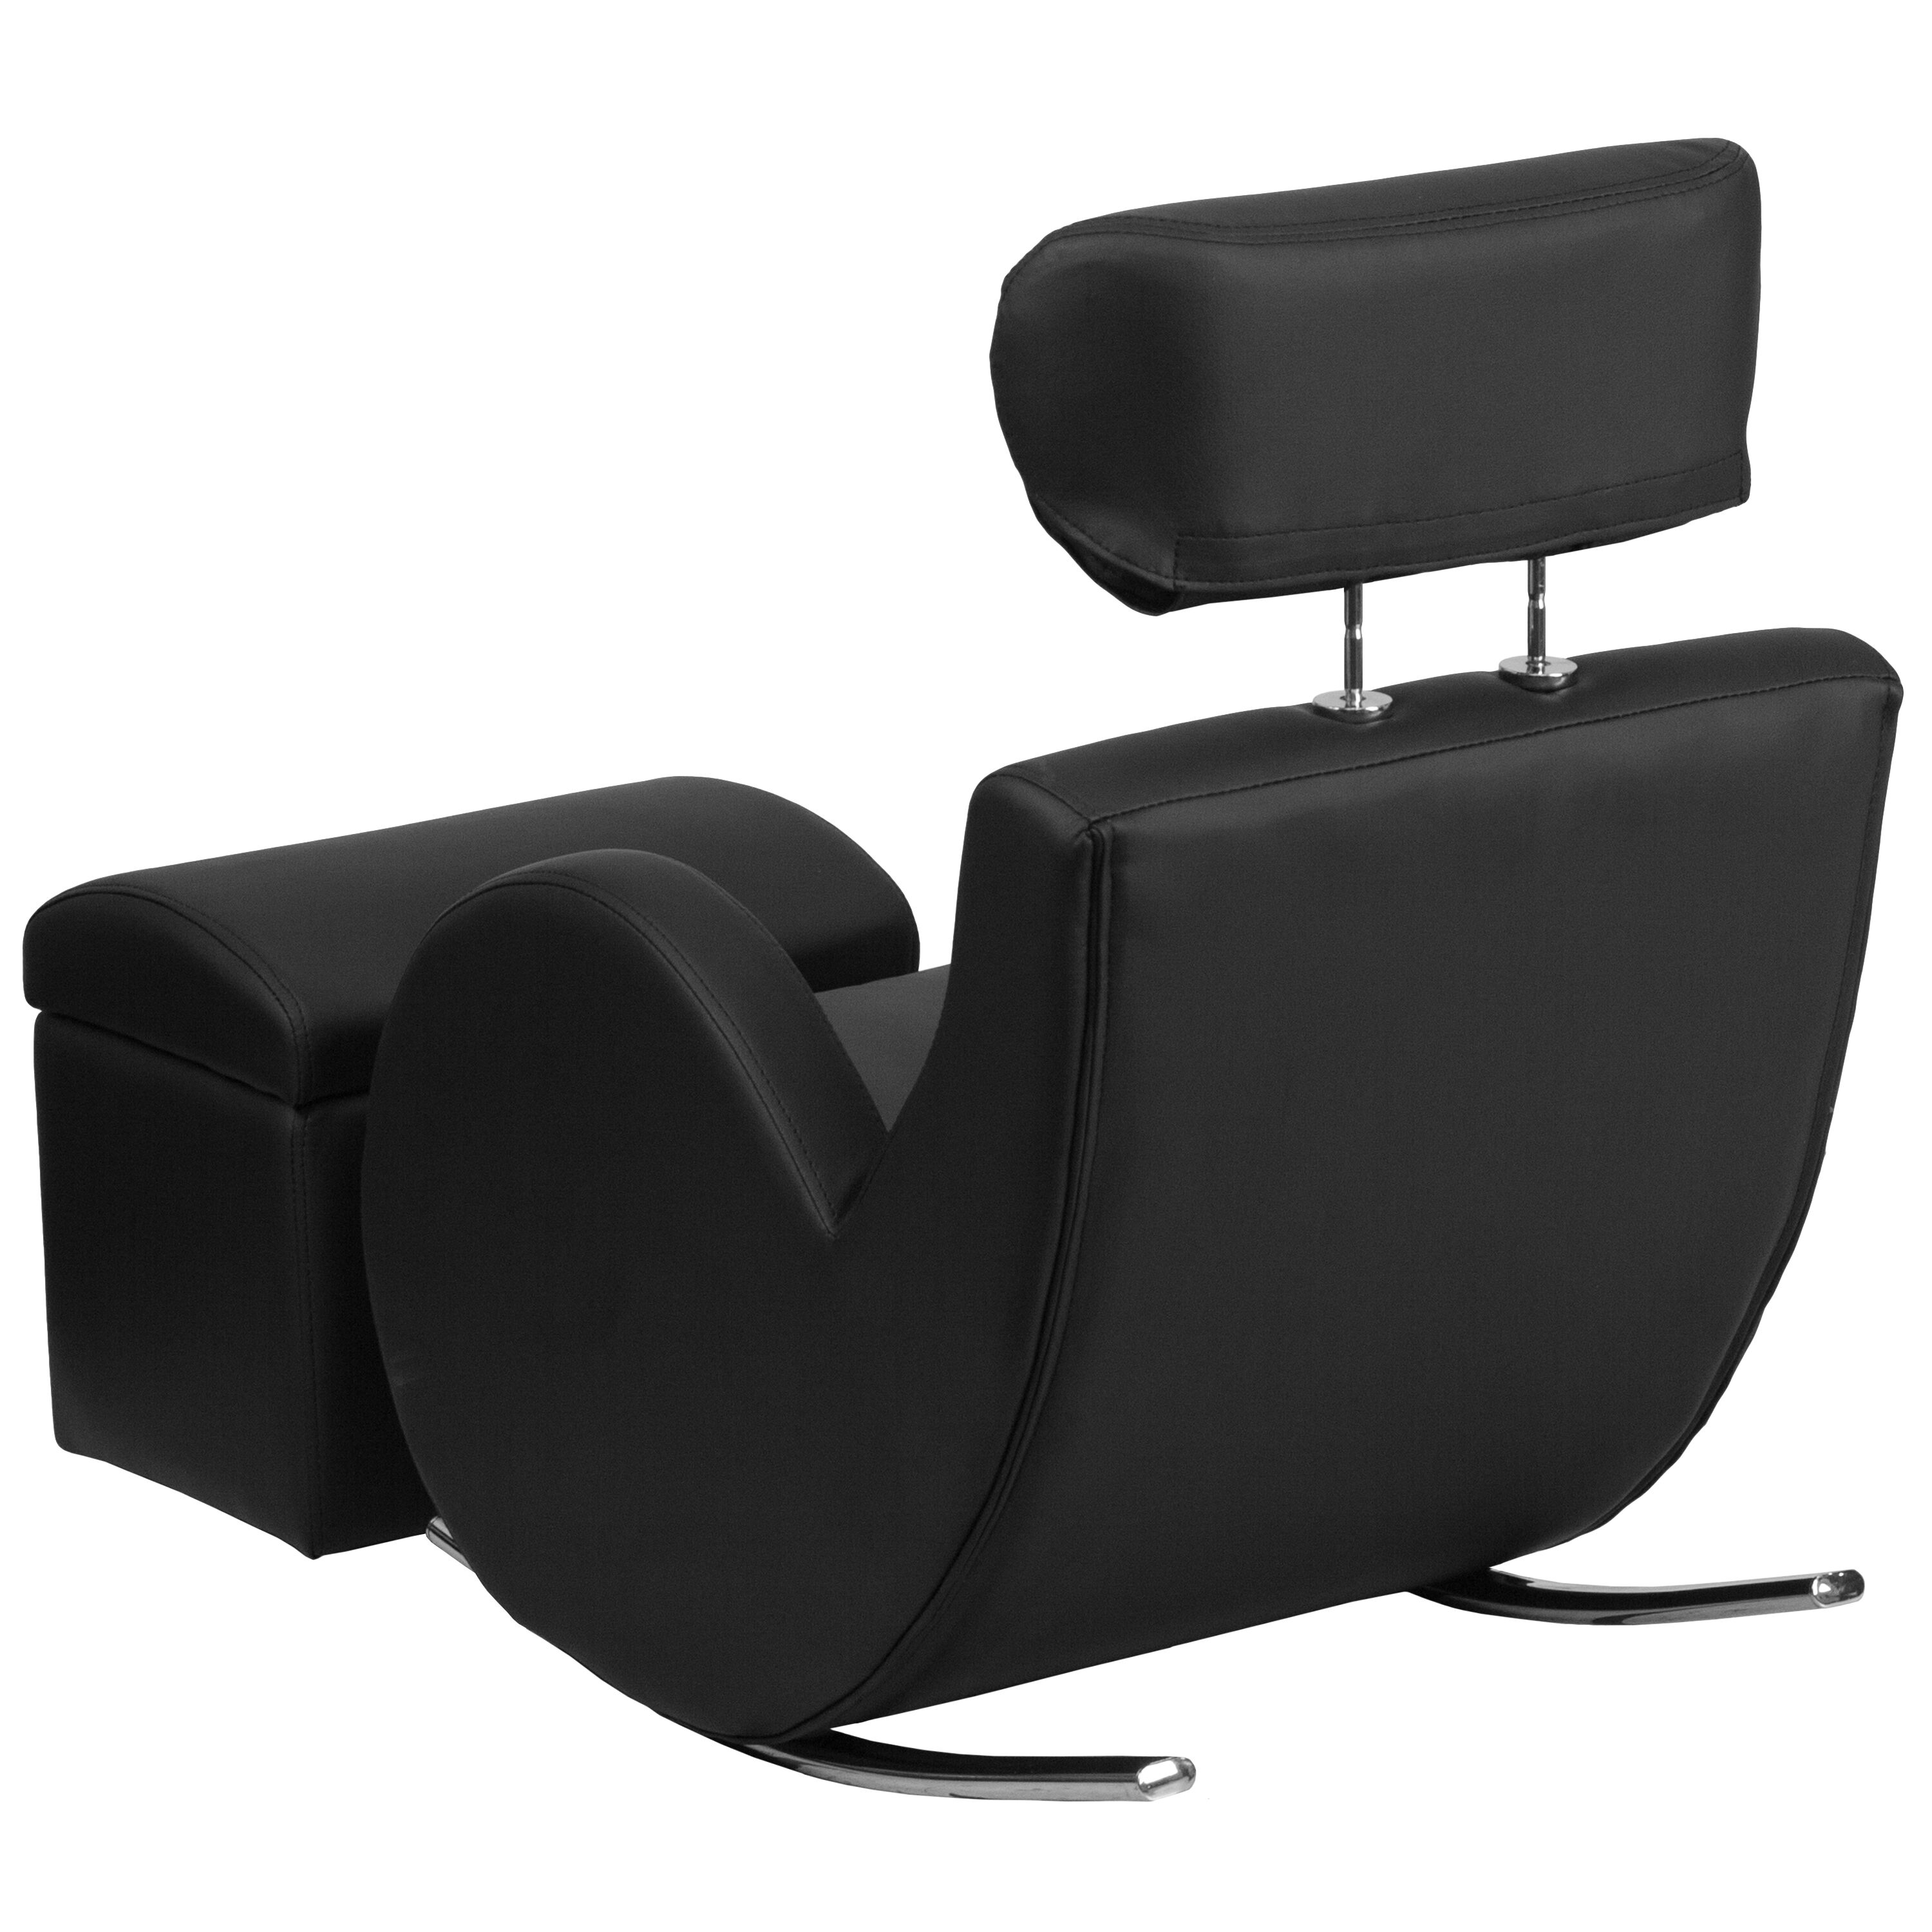 Ordinaire Our HERCULES Series Black Vinyl Rocking Chair With Storage Ottoman Is On  Sale Now.